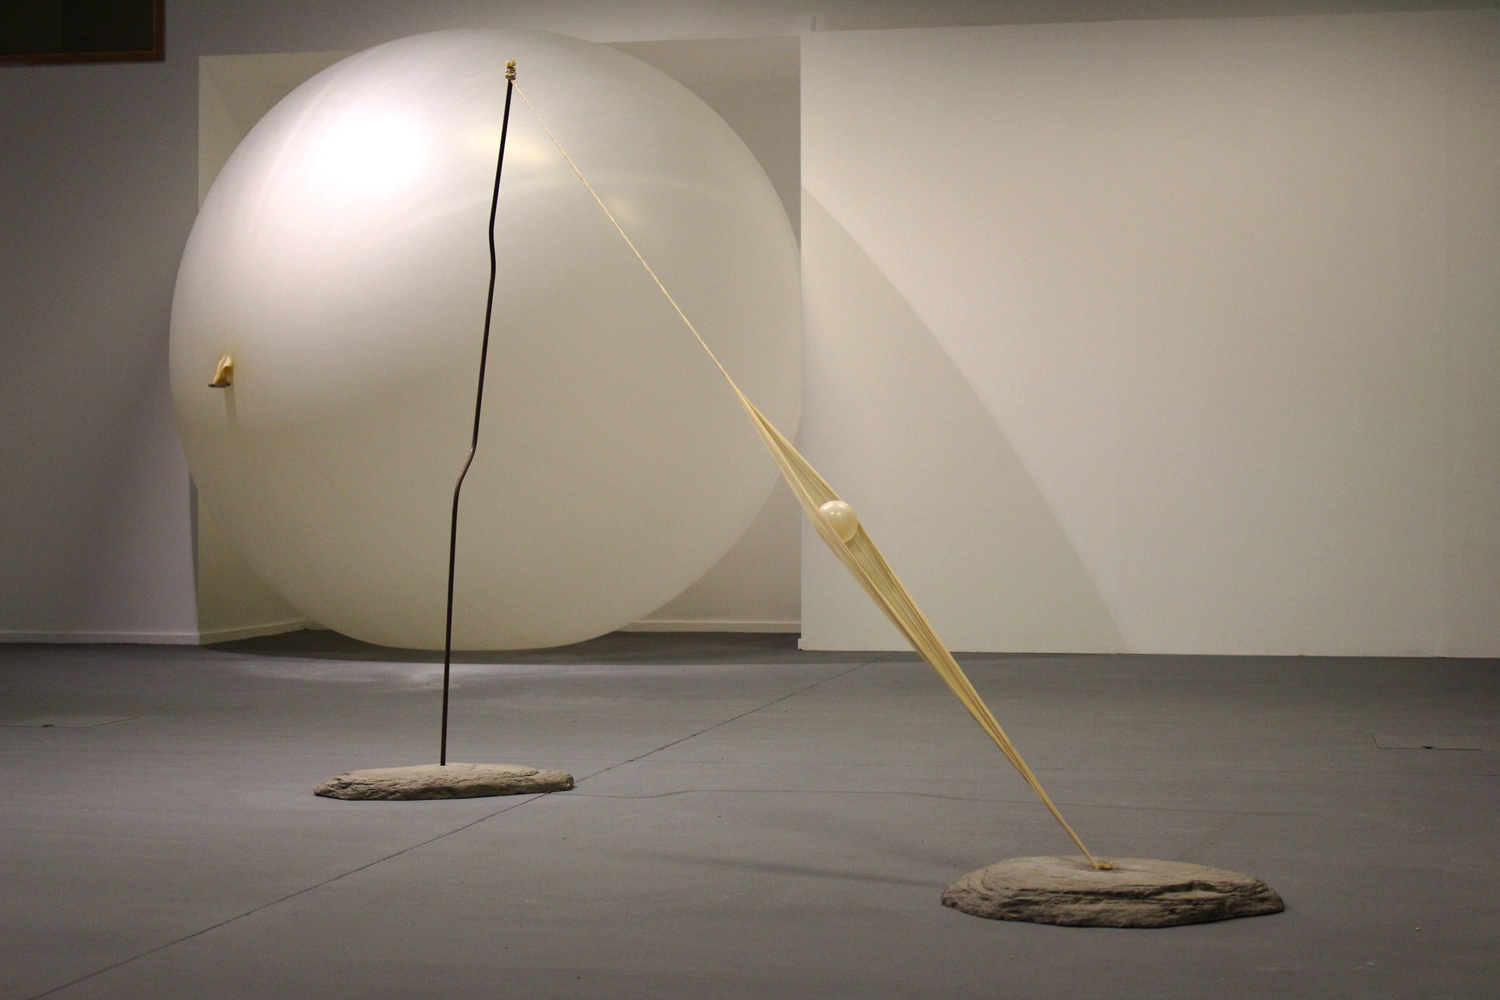 OBJECTS IN MOTION  Torin Francis  17 APR - 4 MAY 2019